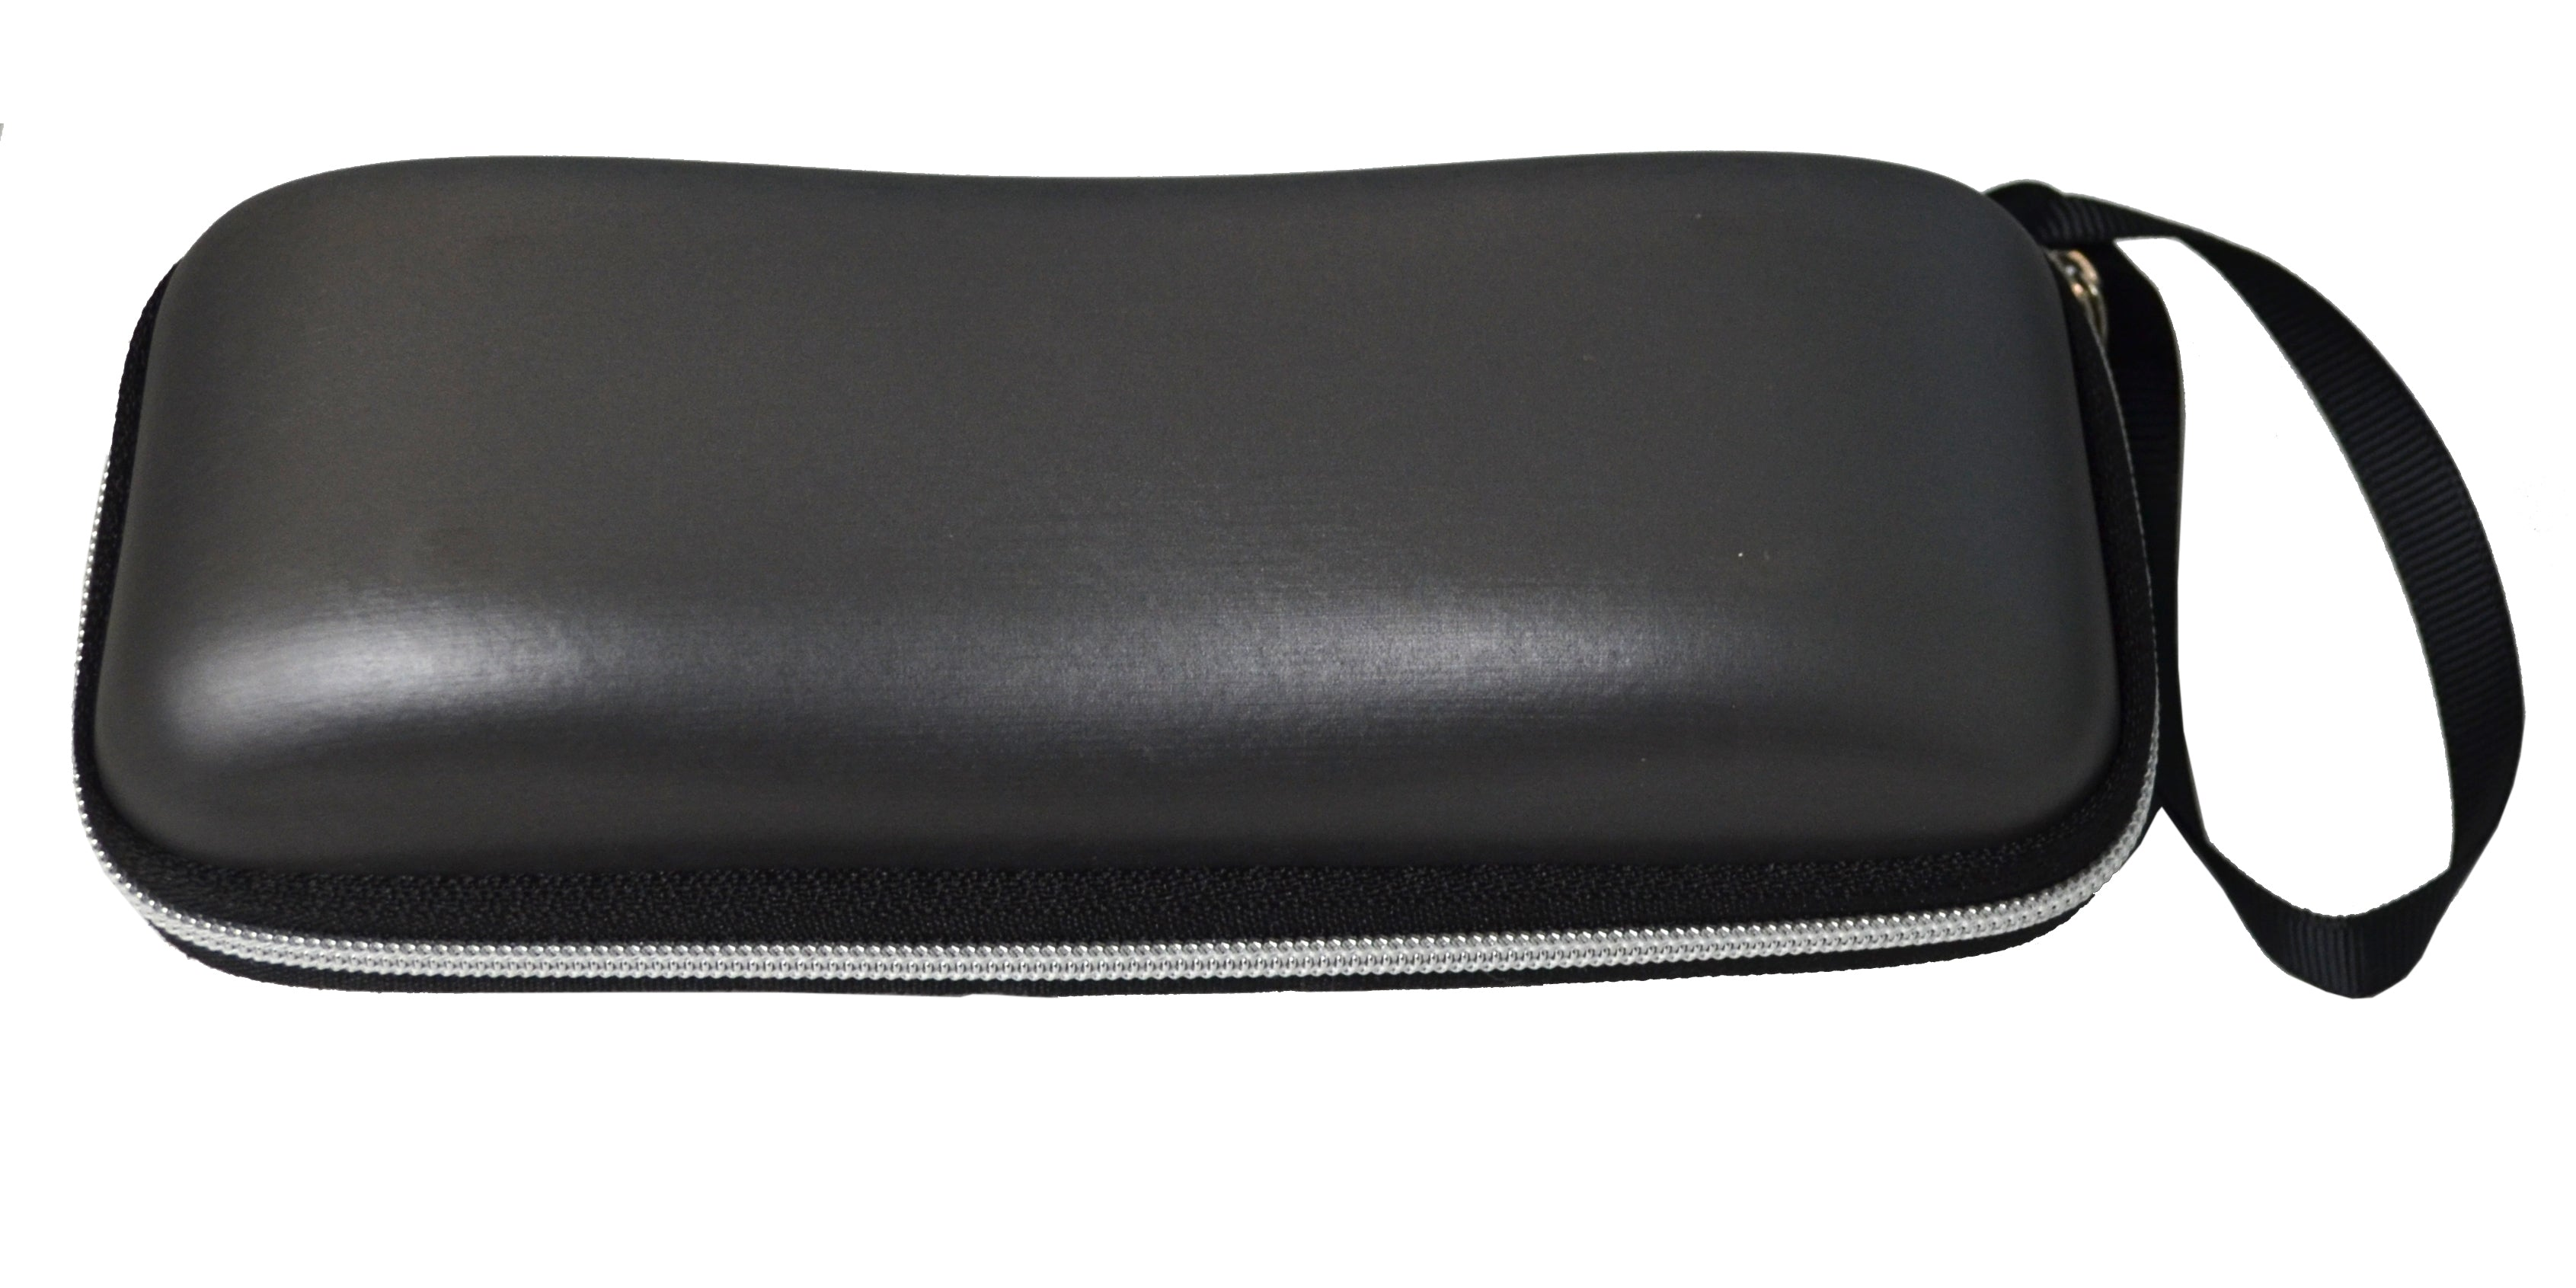 Wholesale - Sunglasses Case 823 Grey - Dynasol Eyewear